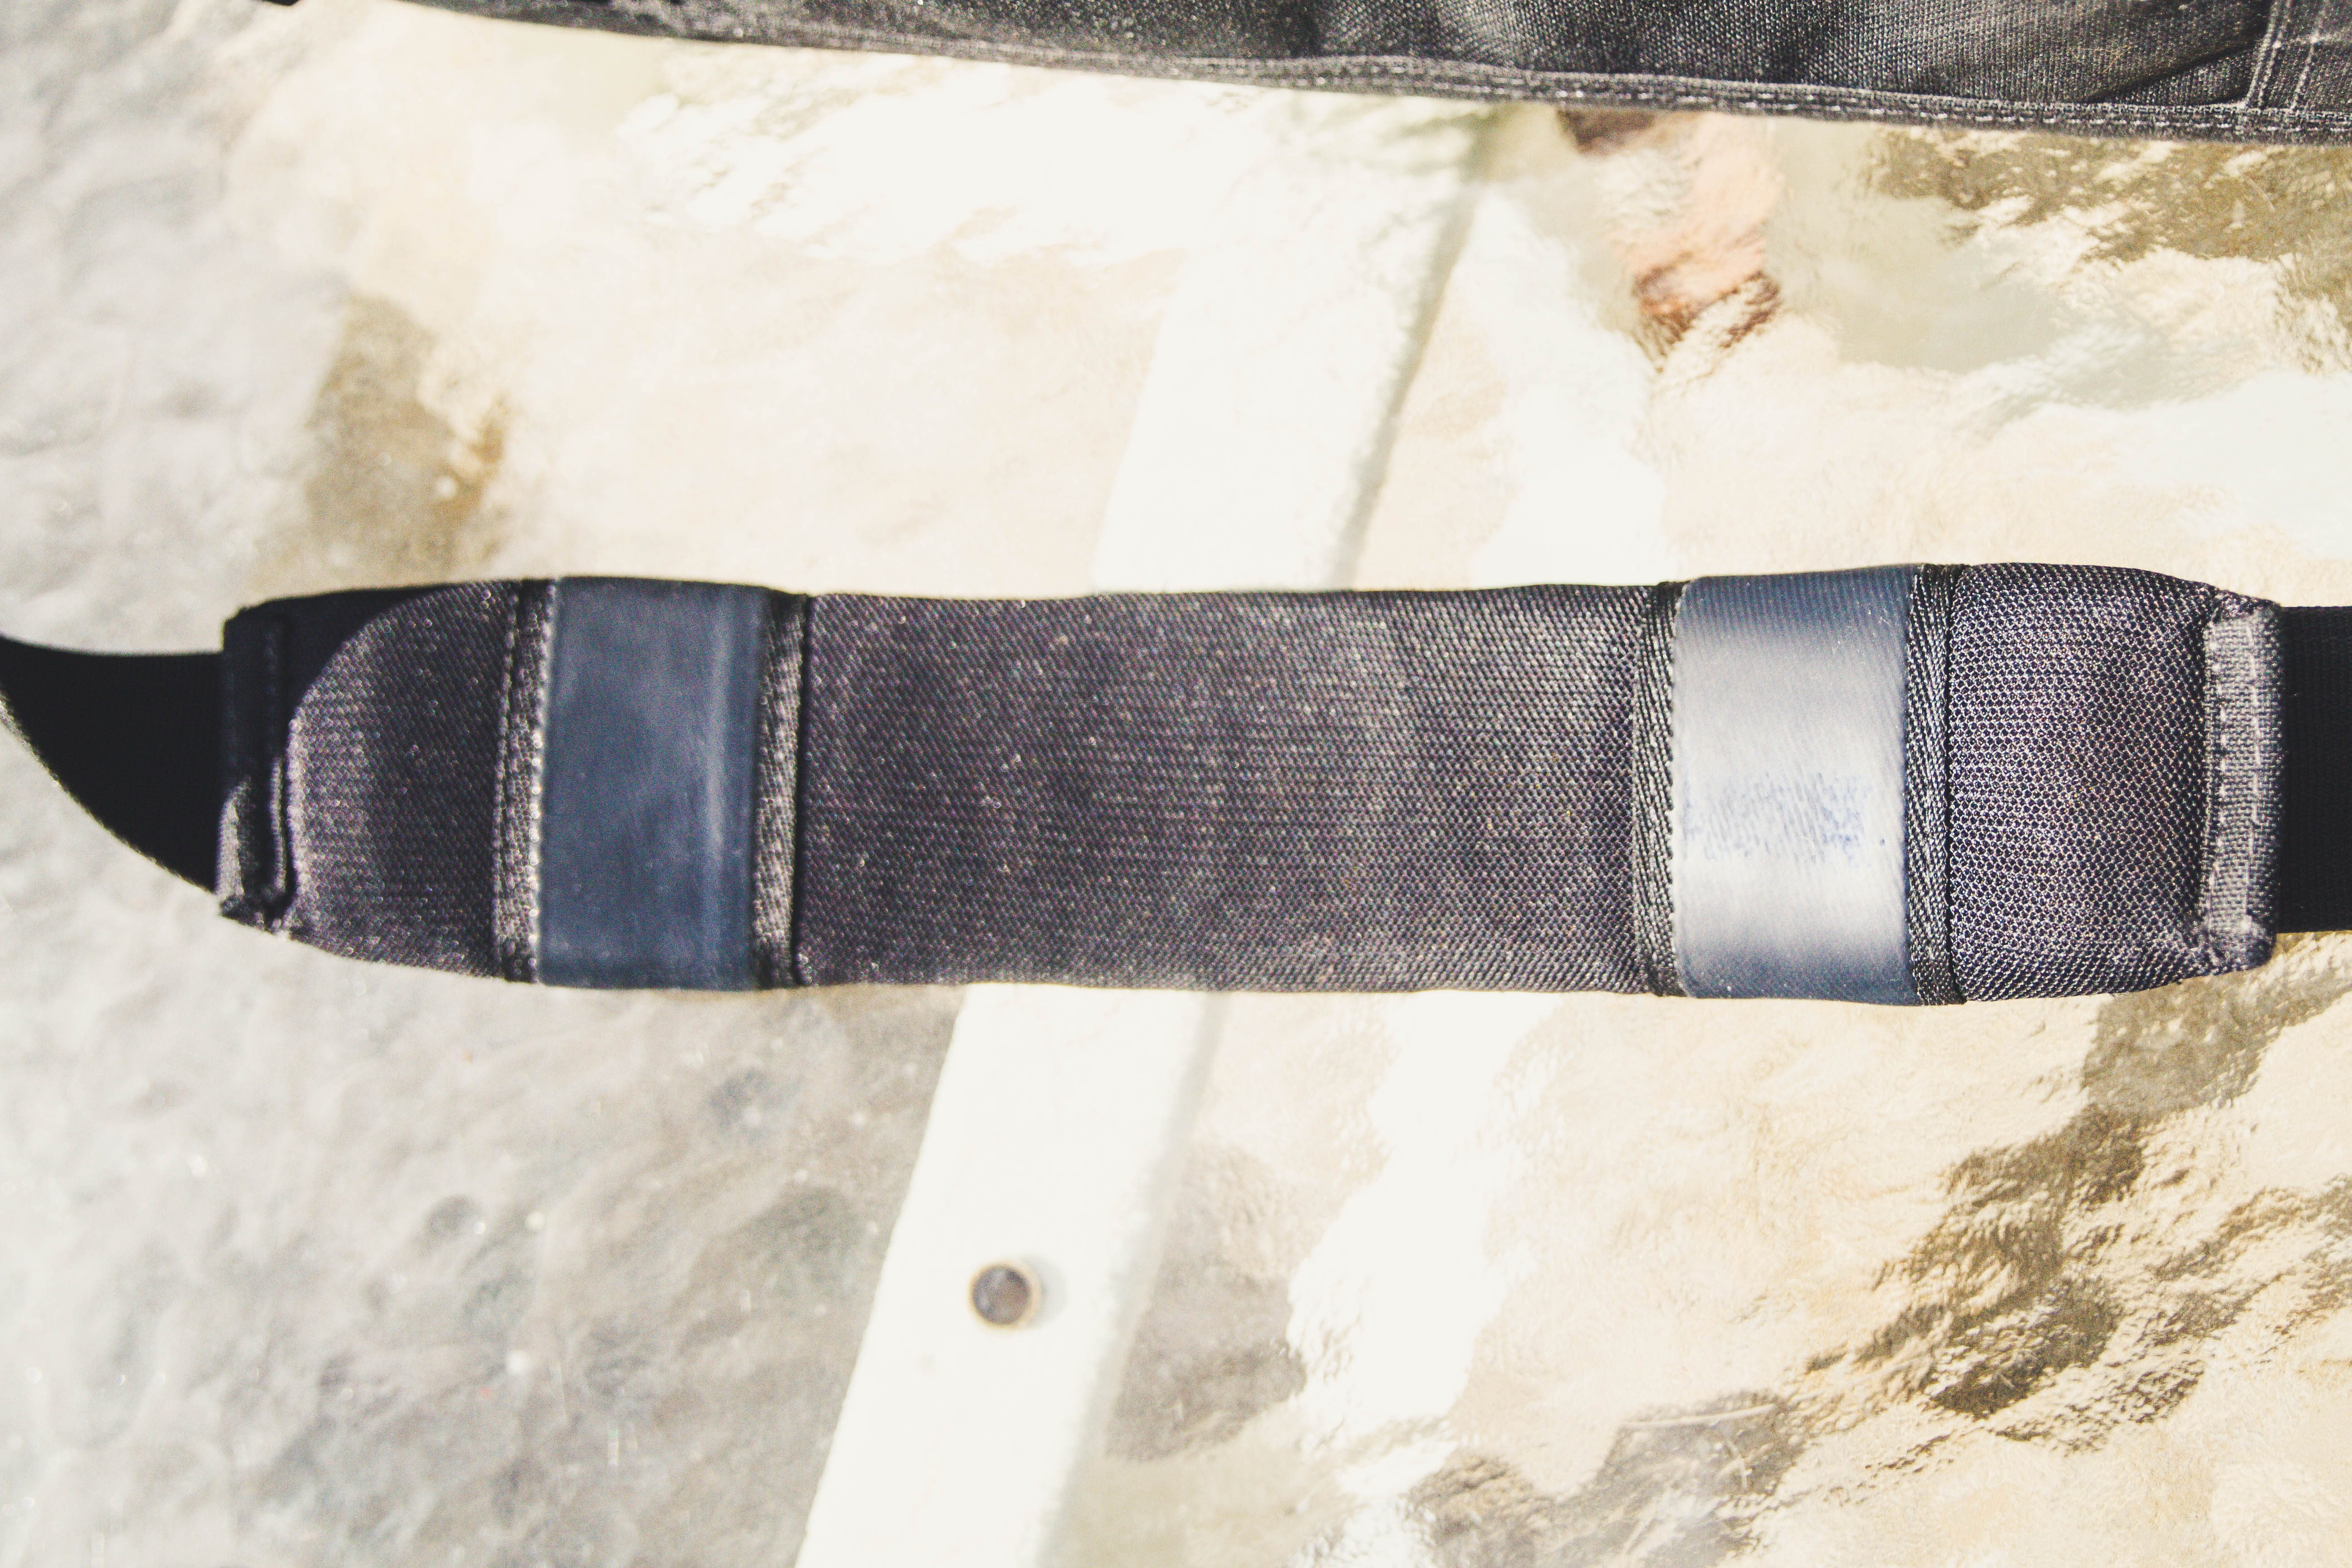 First Tactical Executive Briefcase shoulder strap close up